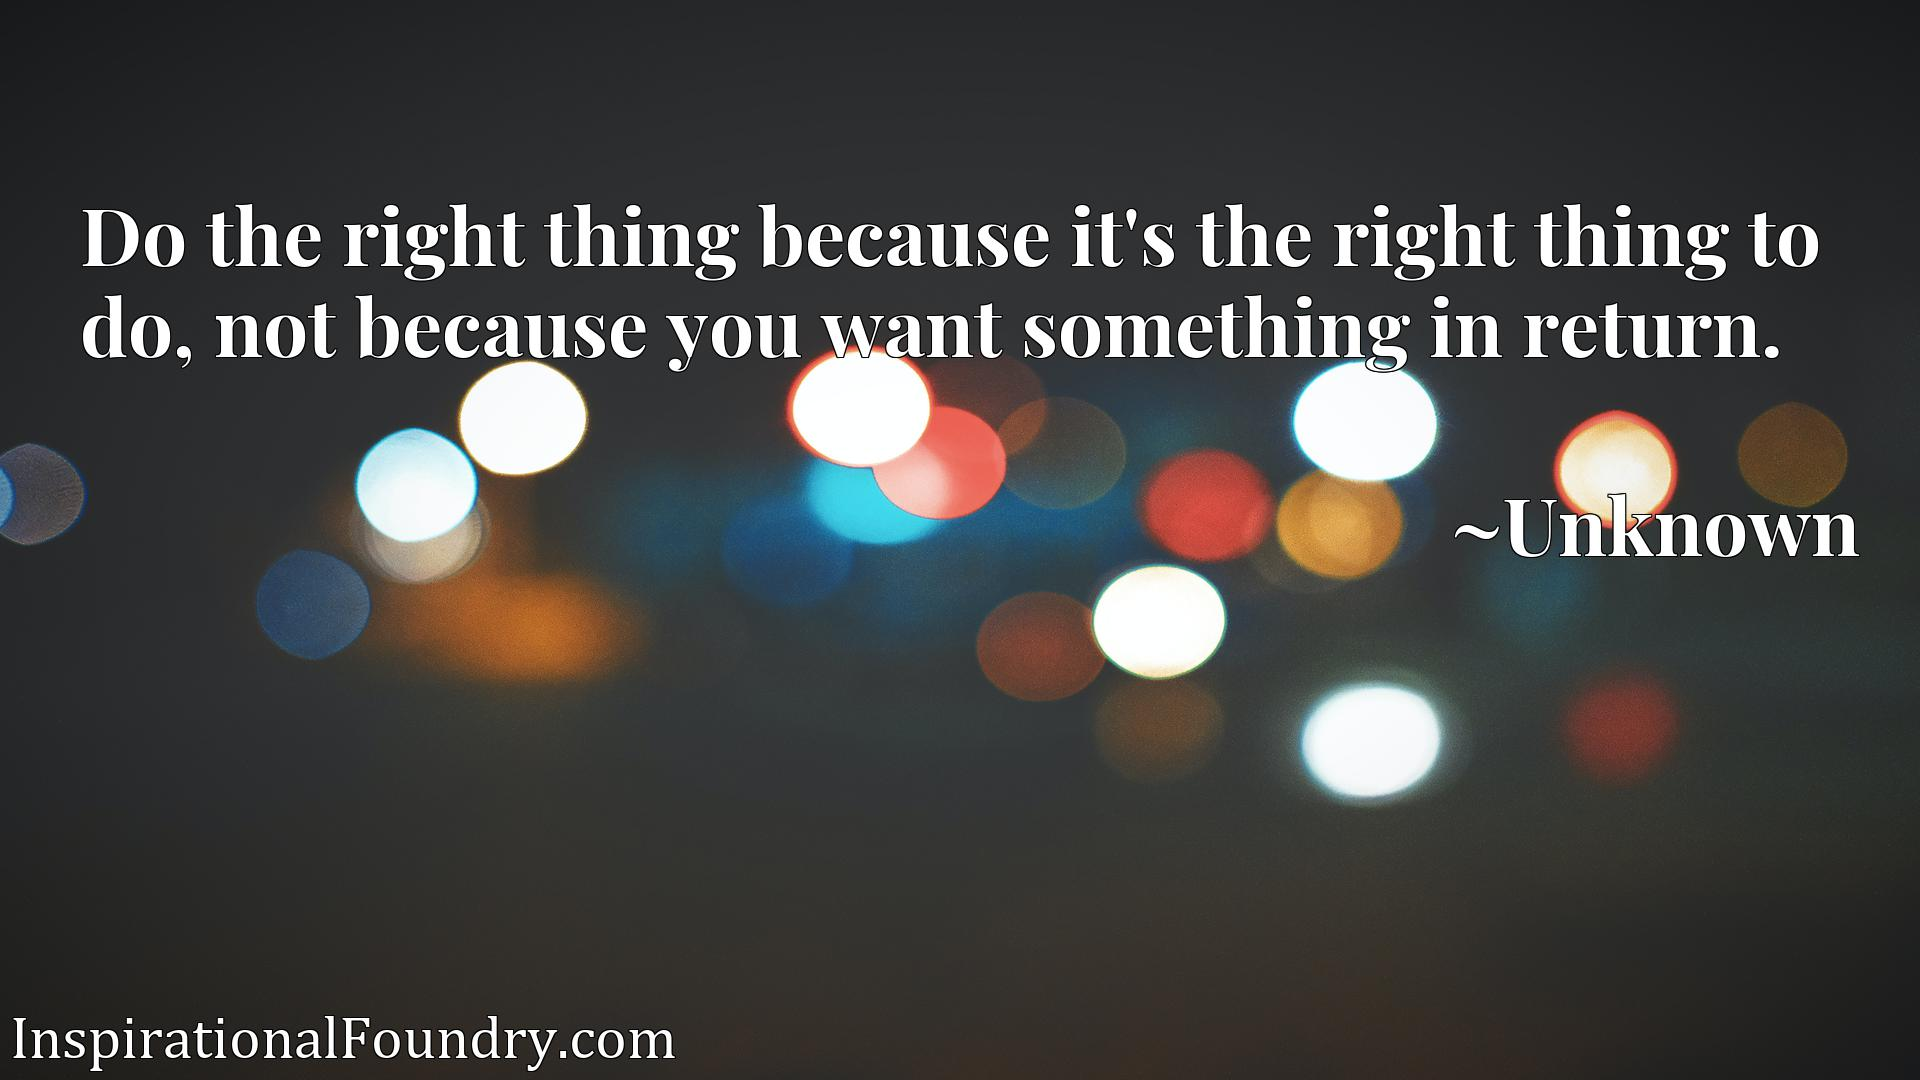 Do the right thing because it's the right thing to do, not because you want something in return.